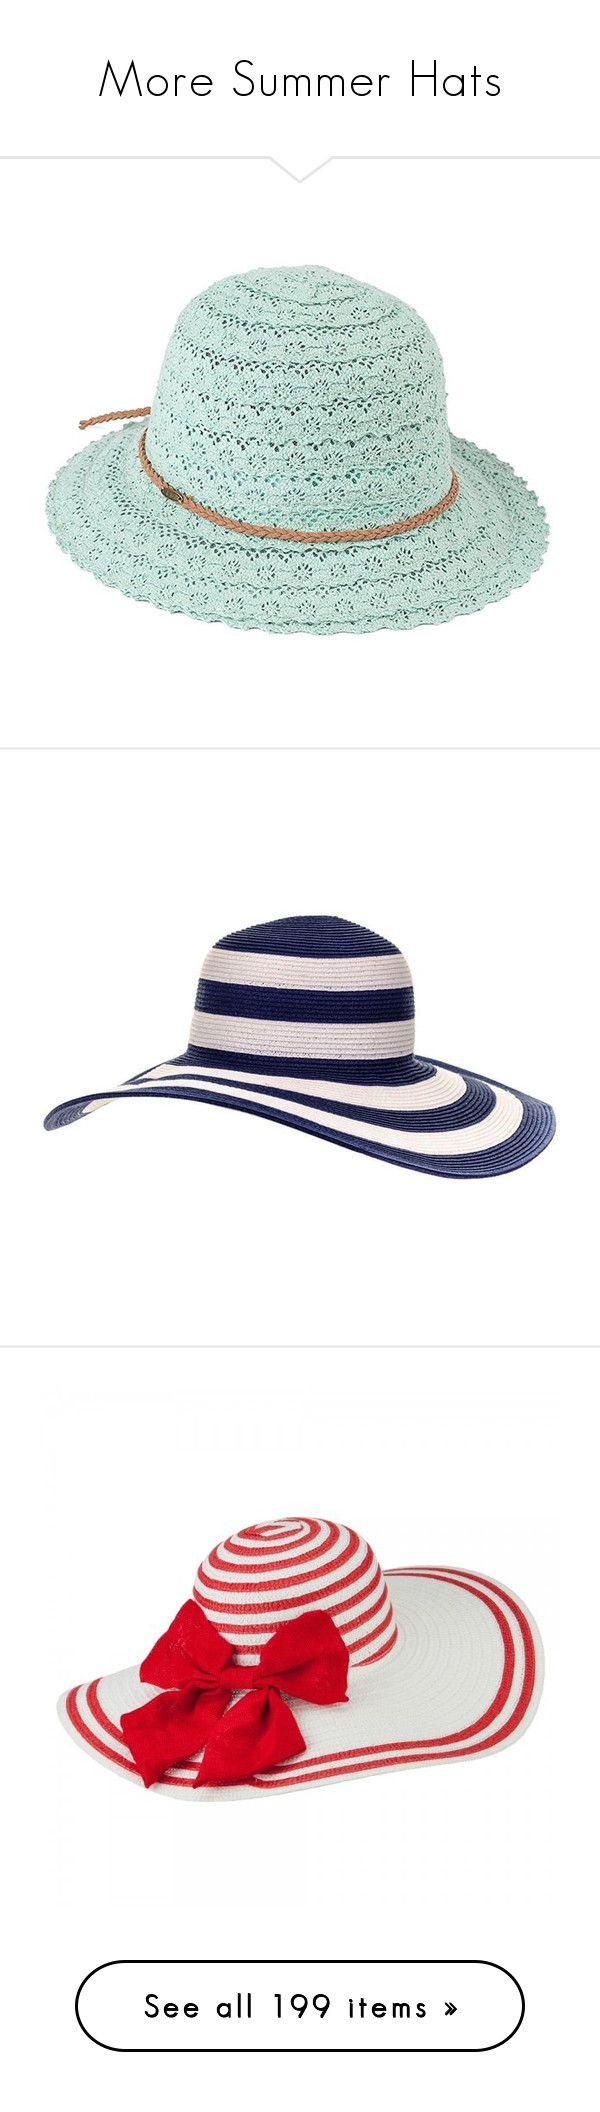 """More Summer Hats"" by judymjohnson ❤ liked on Polyvore featuring accessories, hats, nautical hat, brim sun hat, wide brim hat, stripe hat, travel hat, straw hats, white hat and red hat"